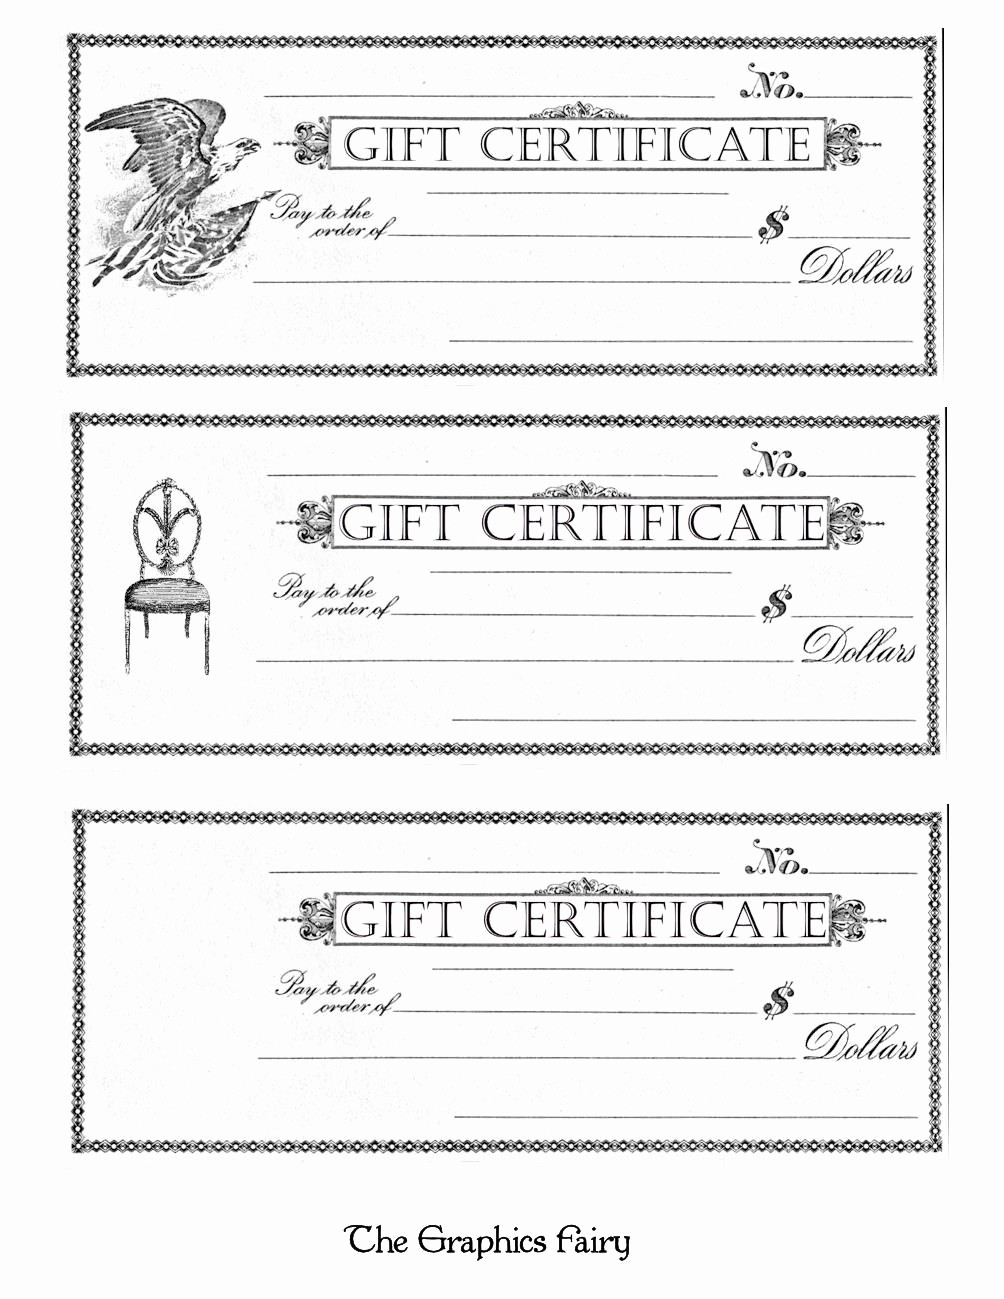 Gift Card Templates Free Printable New Blank Gift Certificate Template Example Mughals